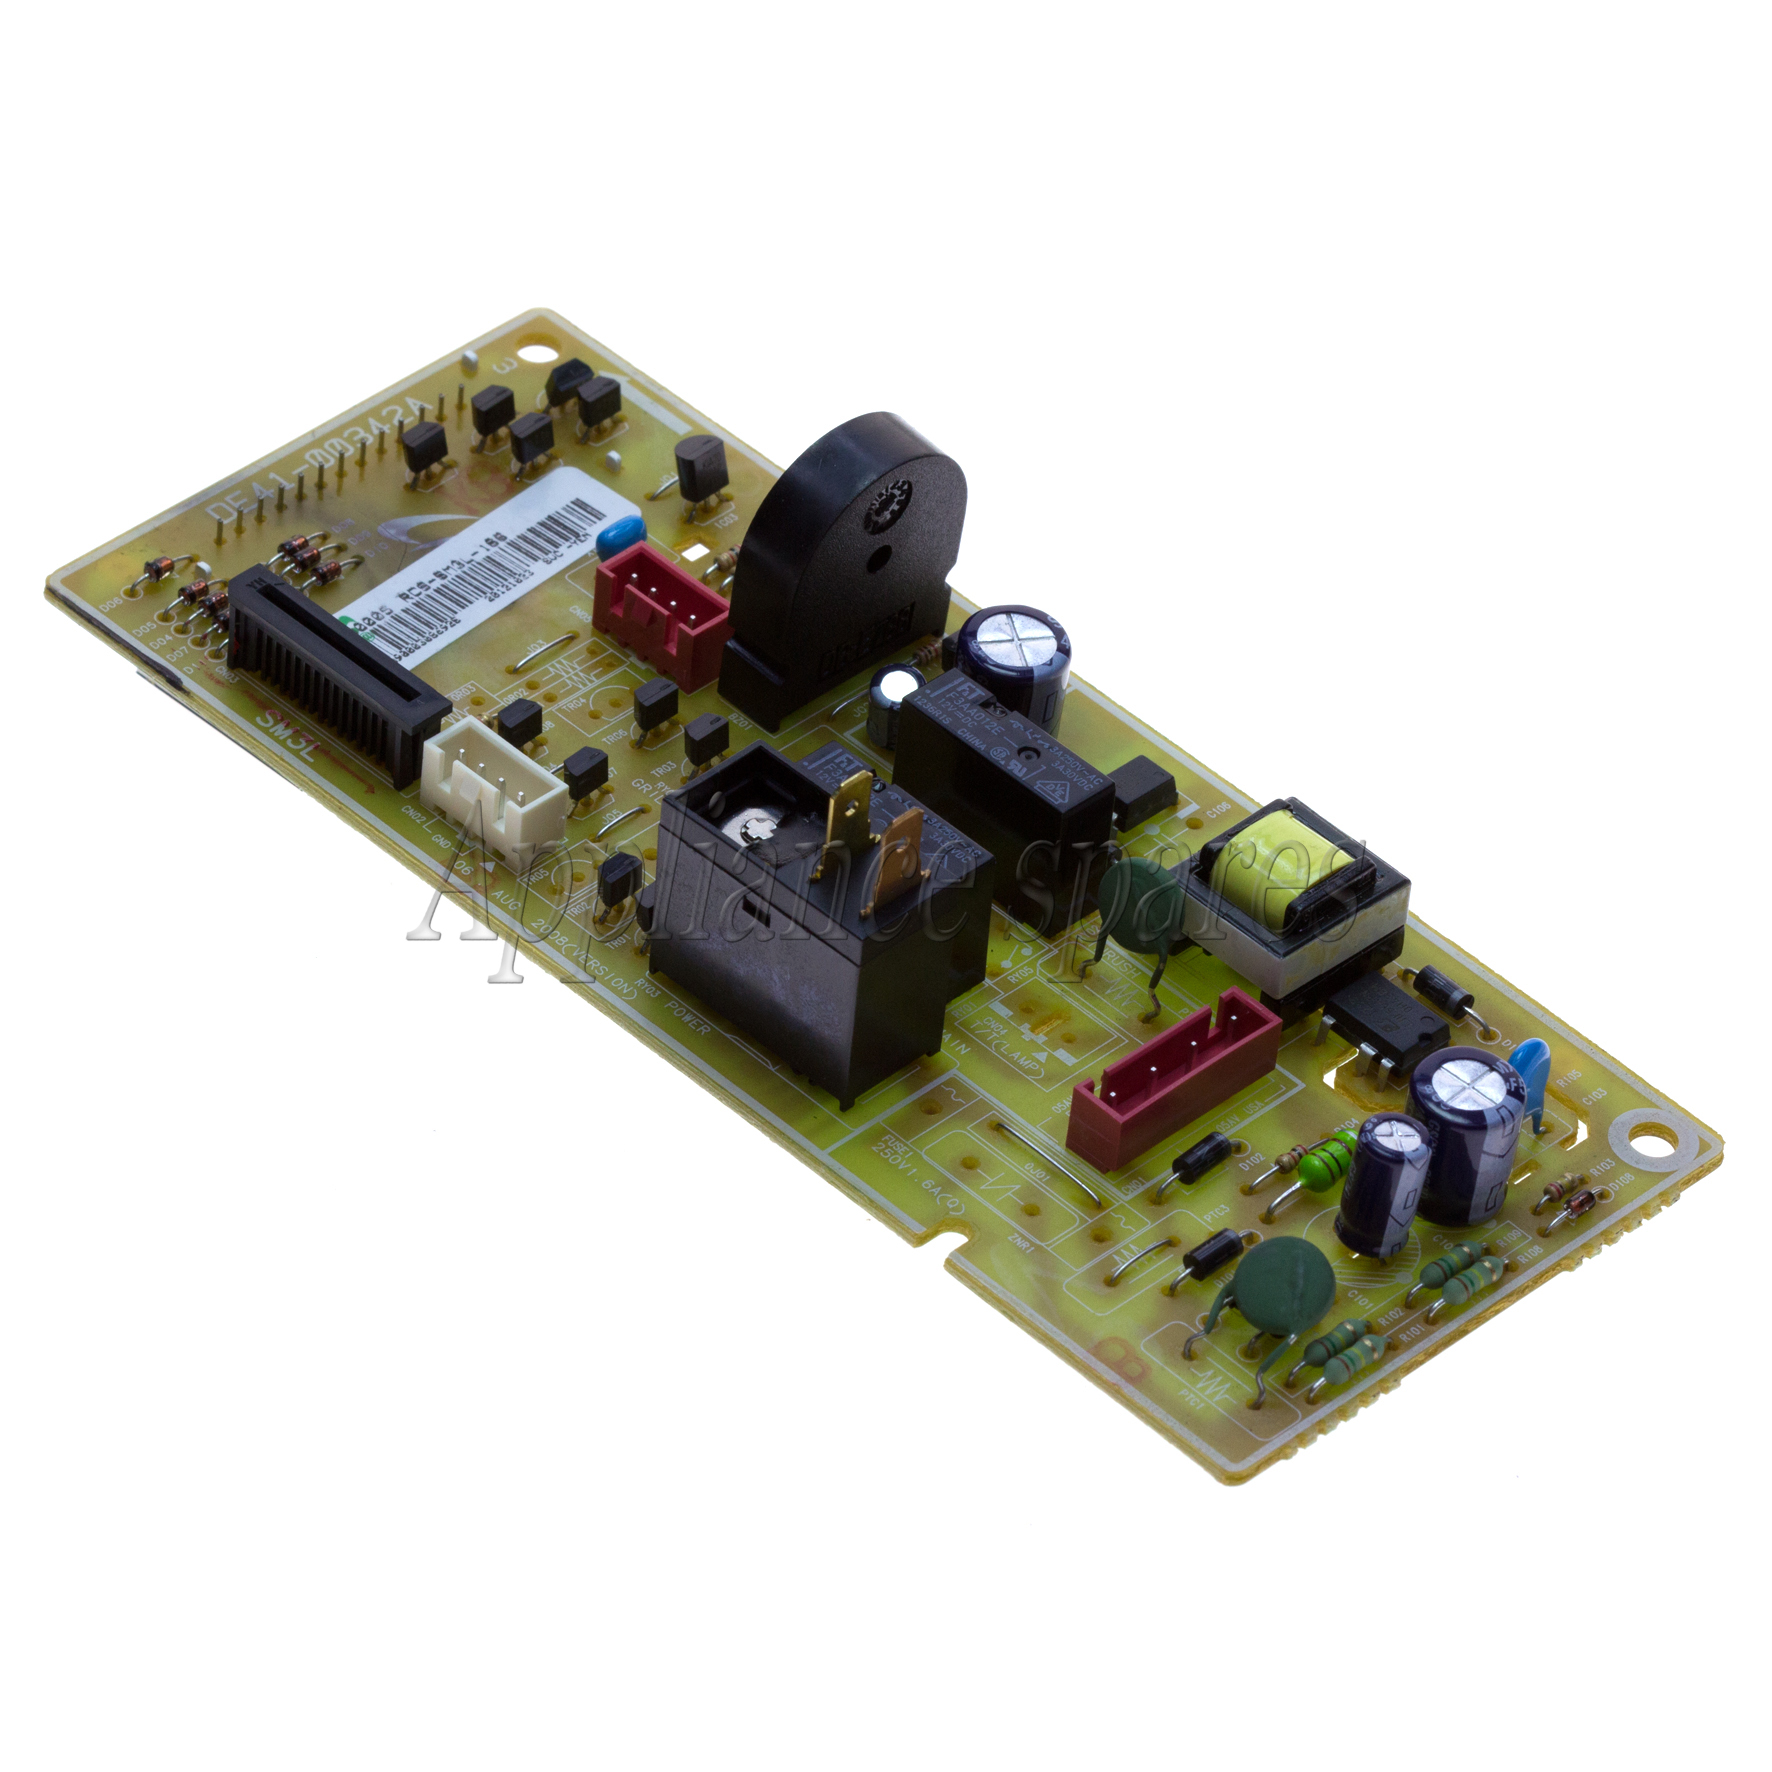 Samsung Microwave Oven Pc Board Rcssm3l166